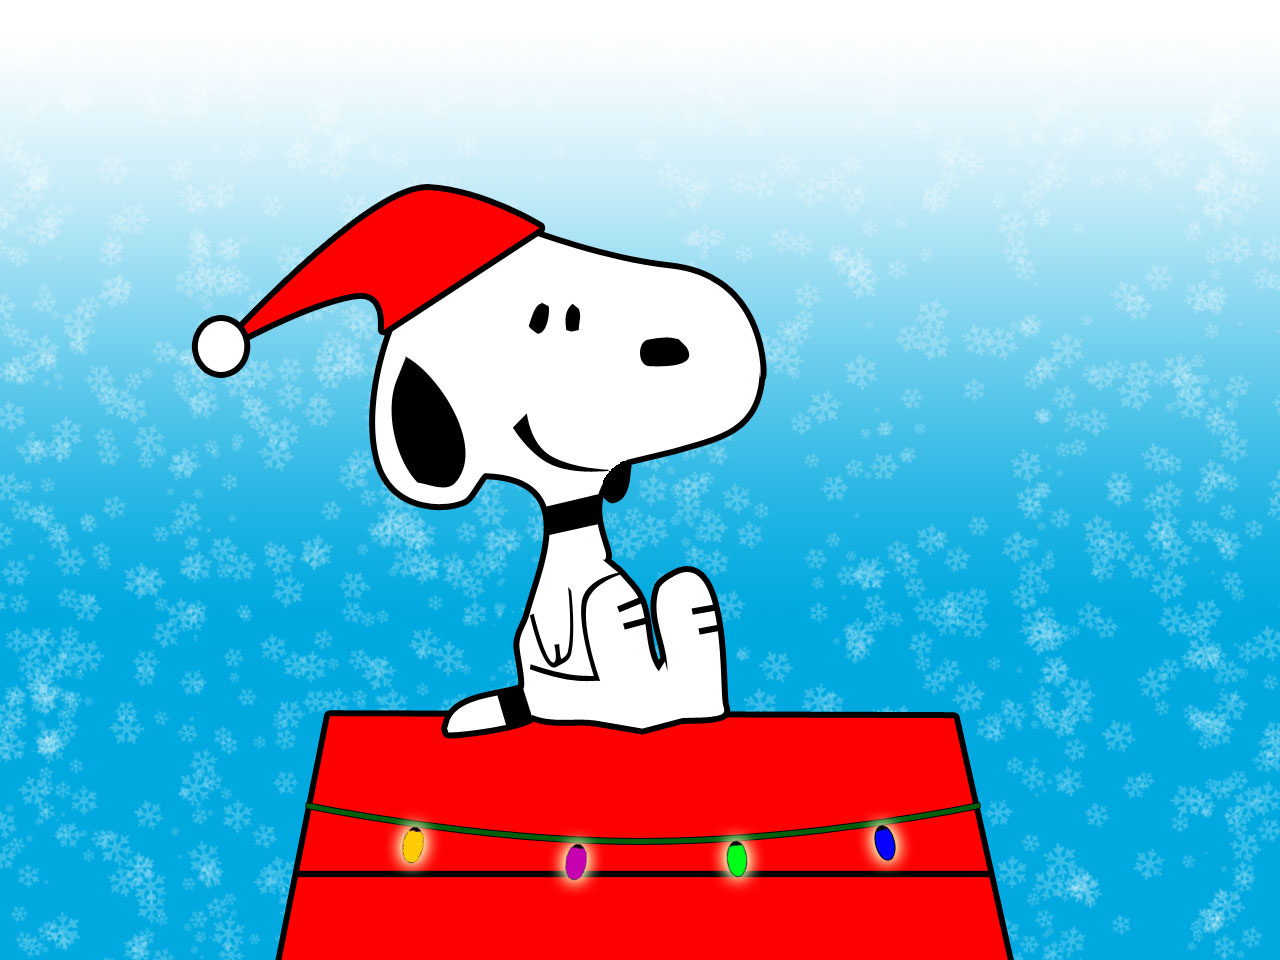 Snoopy Christmas Wallpapers 1280x960